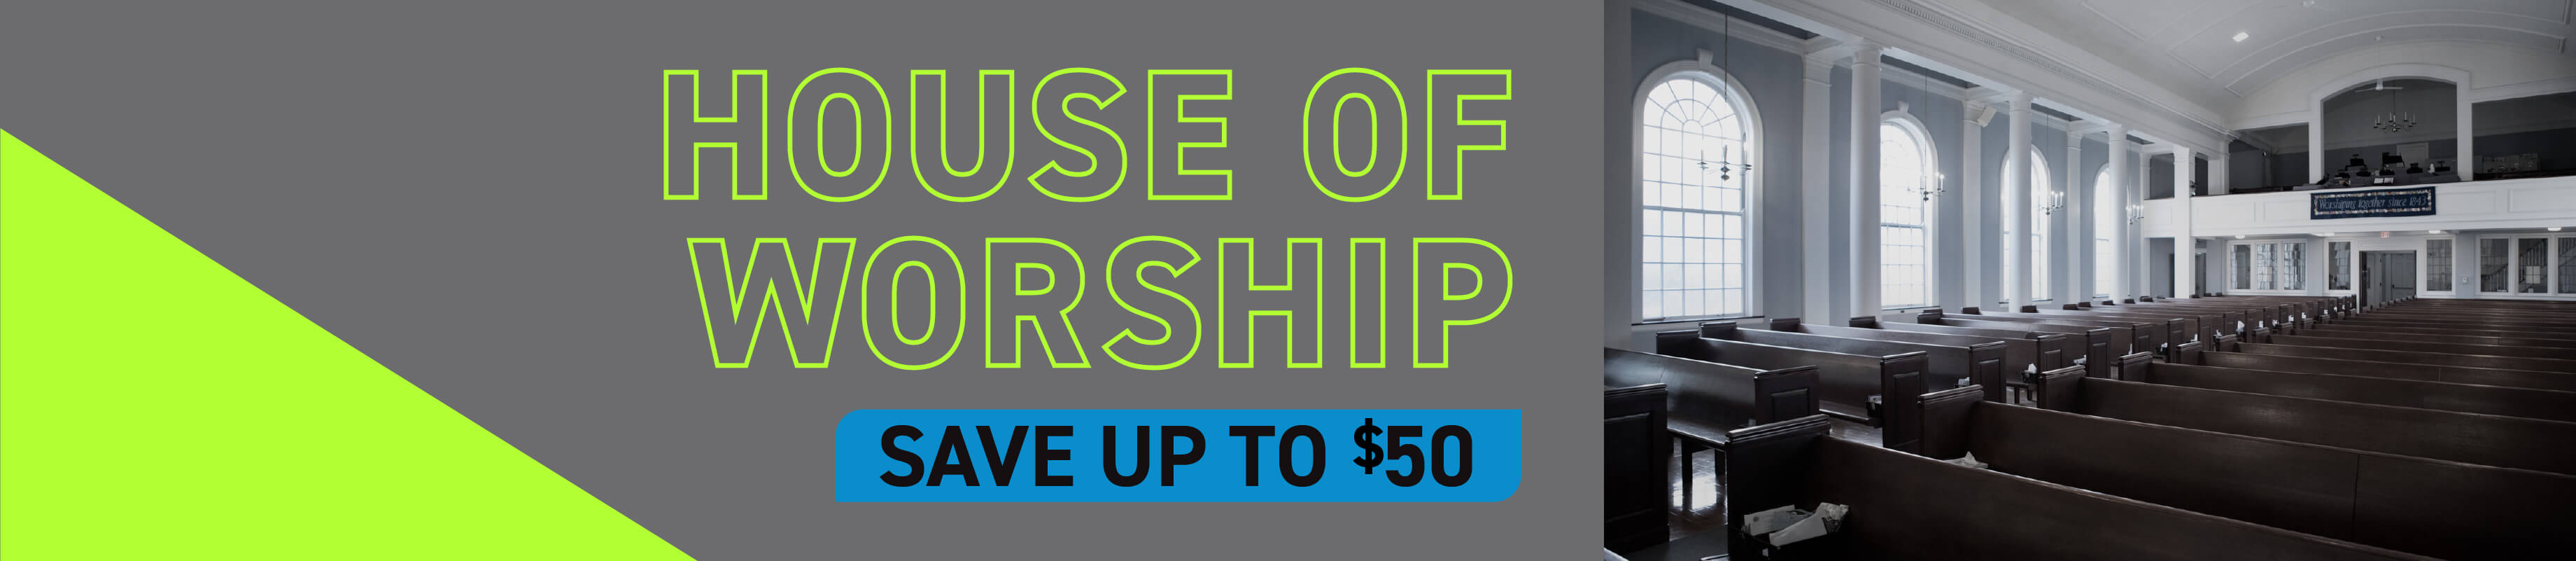 House of Worship | Save up to $50